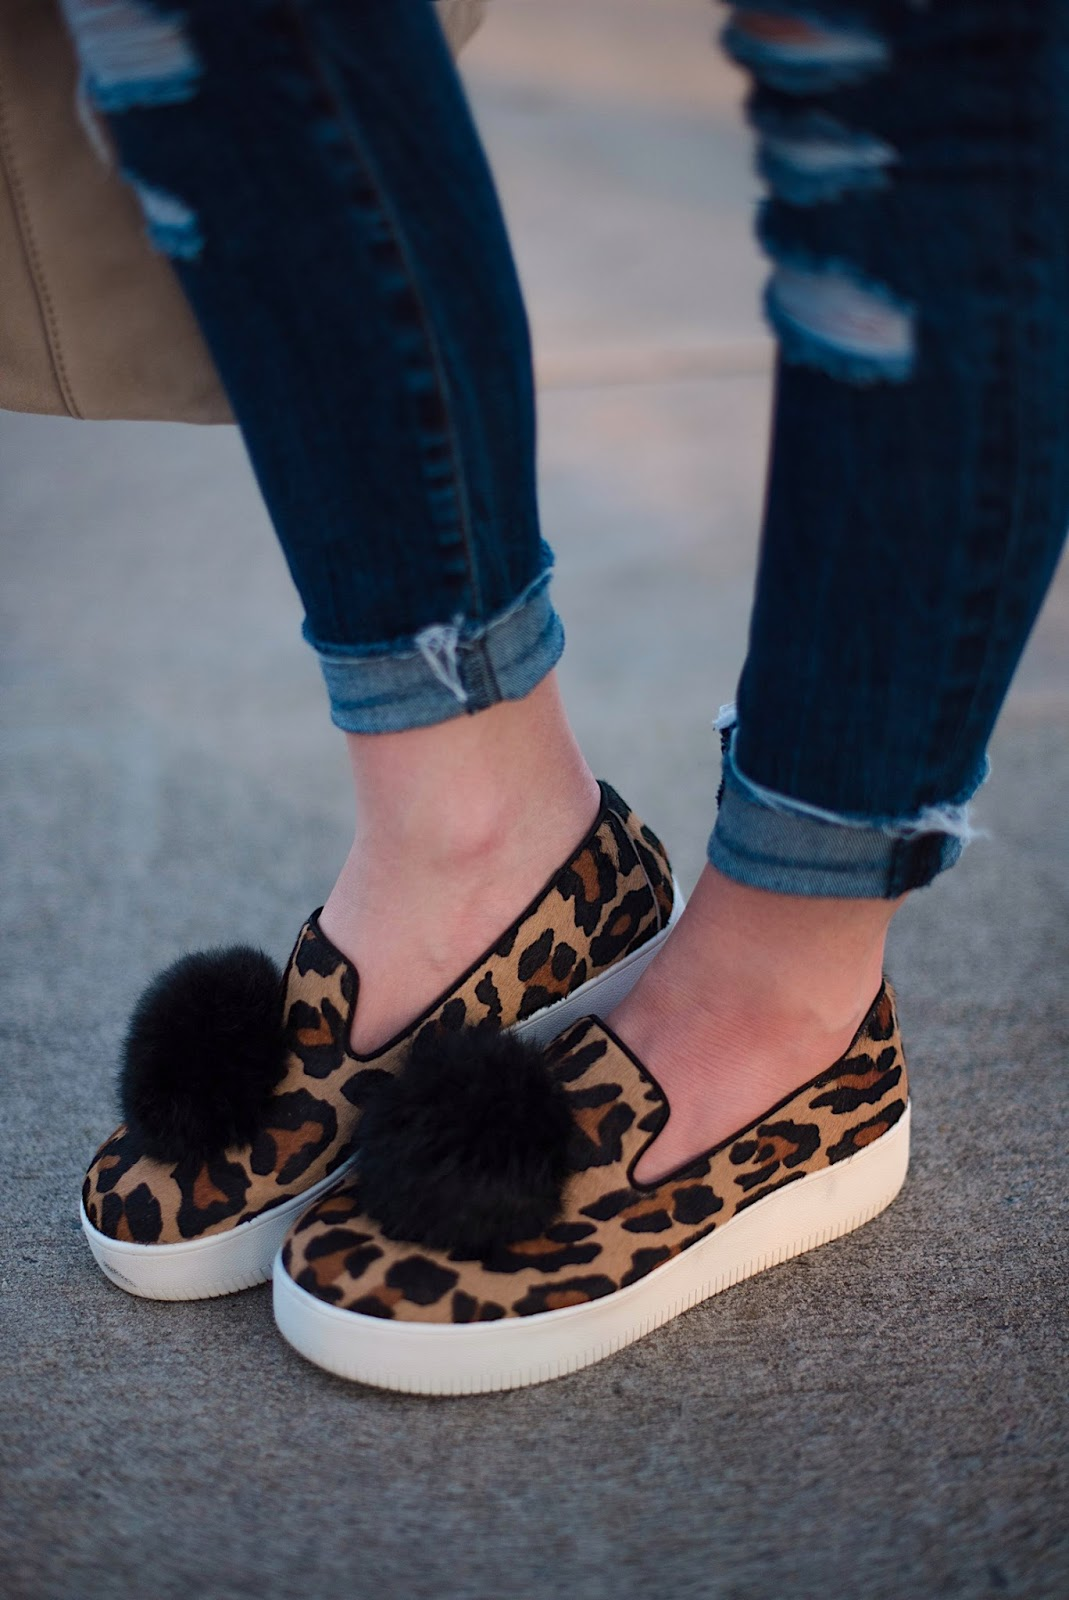 Leopard Sneakers - Something Delightful Blog